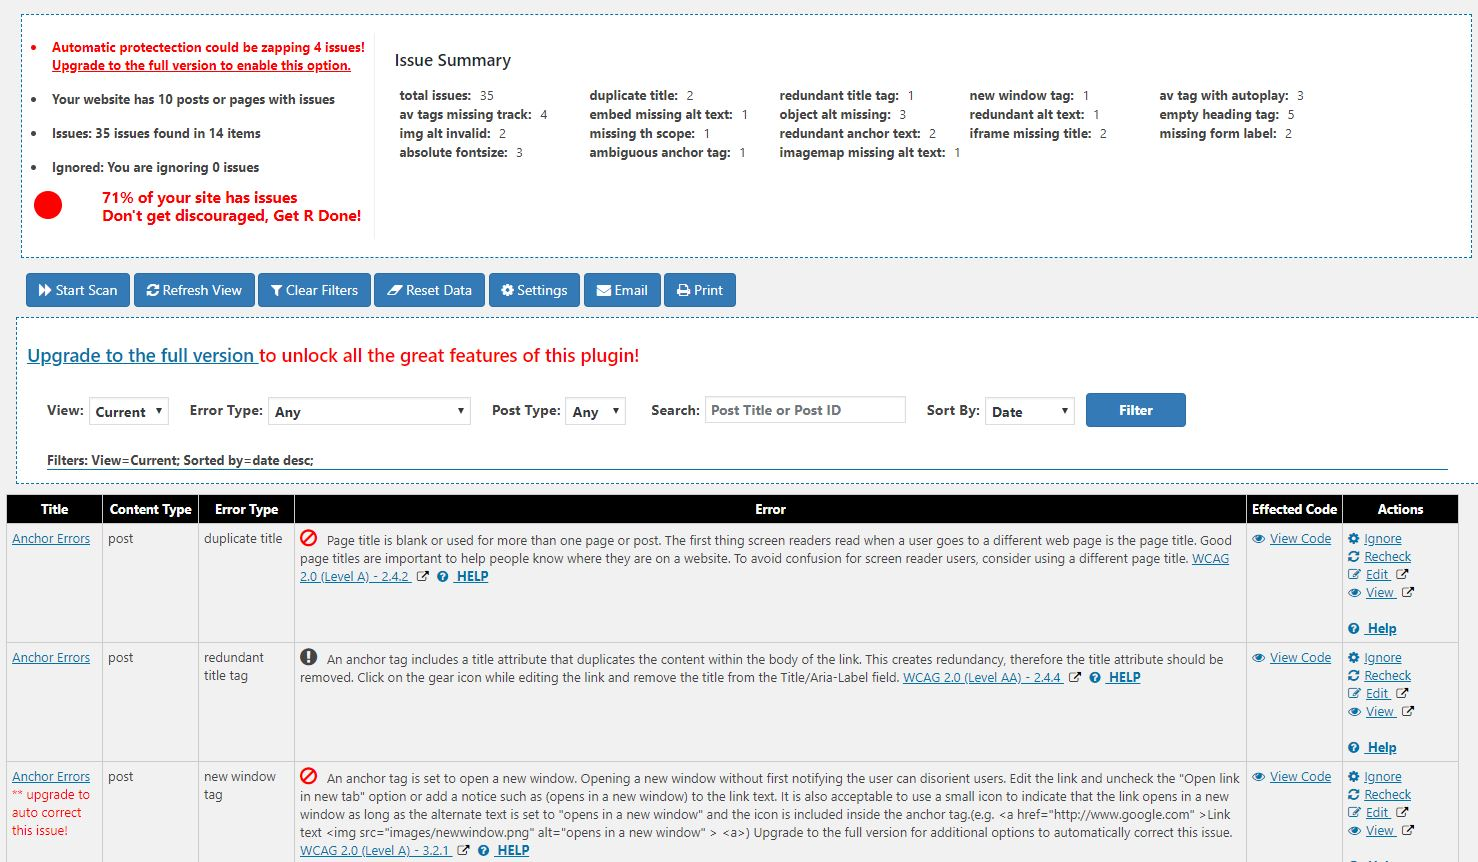 The Web Accessability report screen includes a list of errors found on the website. Each row includes a description of the error, code view and options for viewing or correcting the issue.